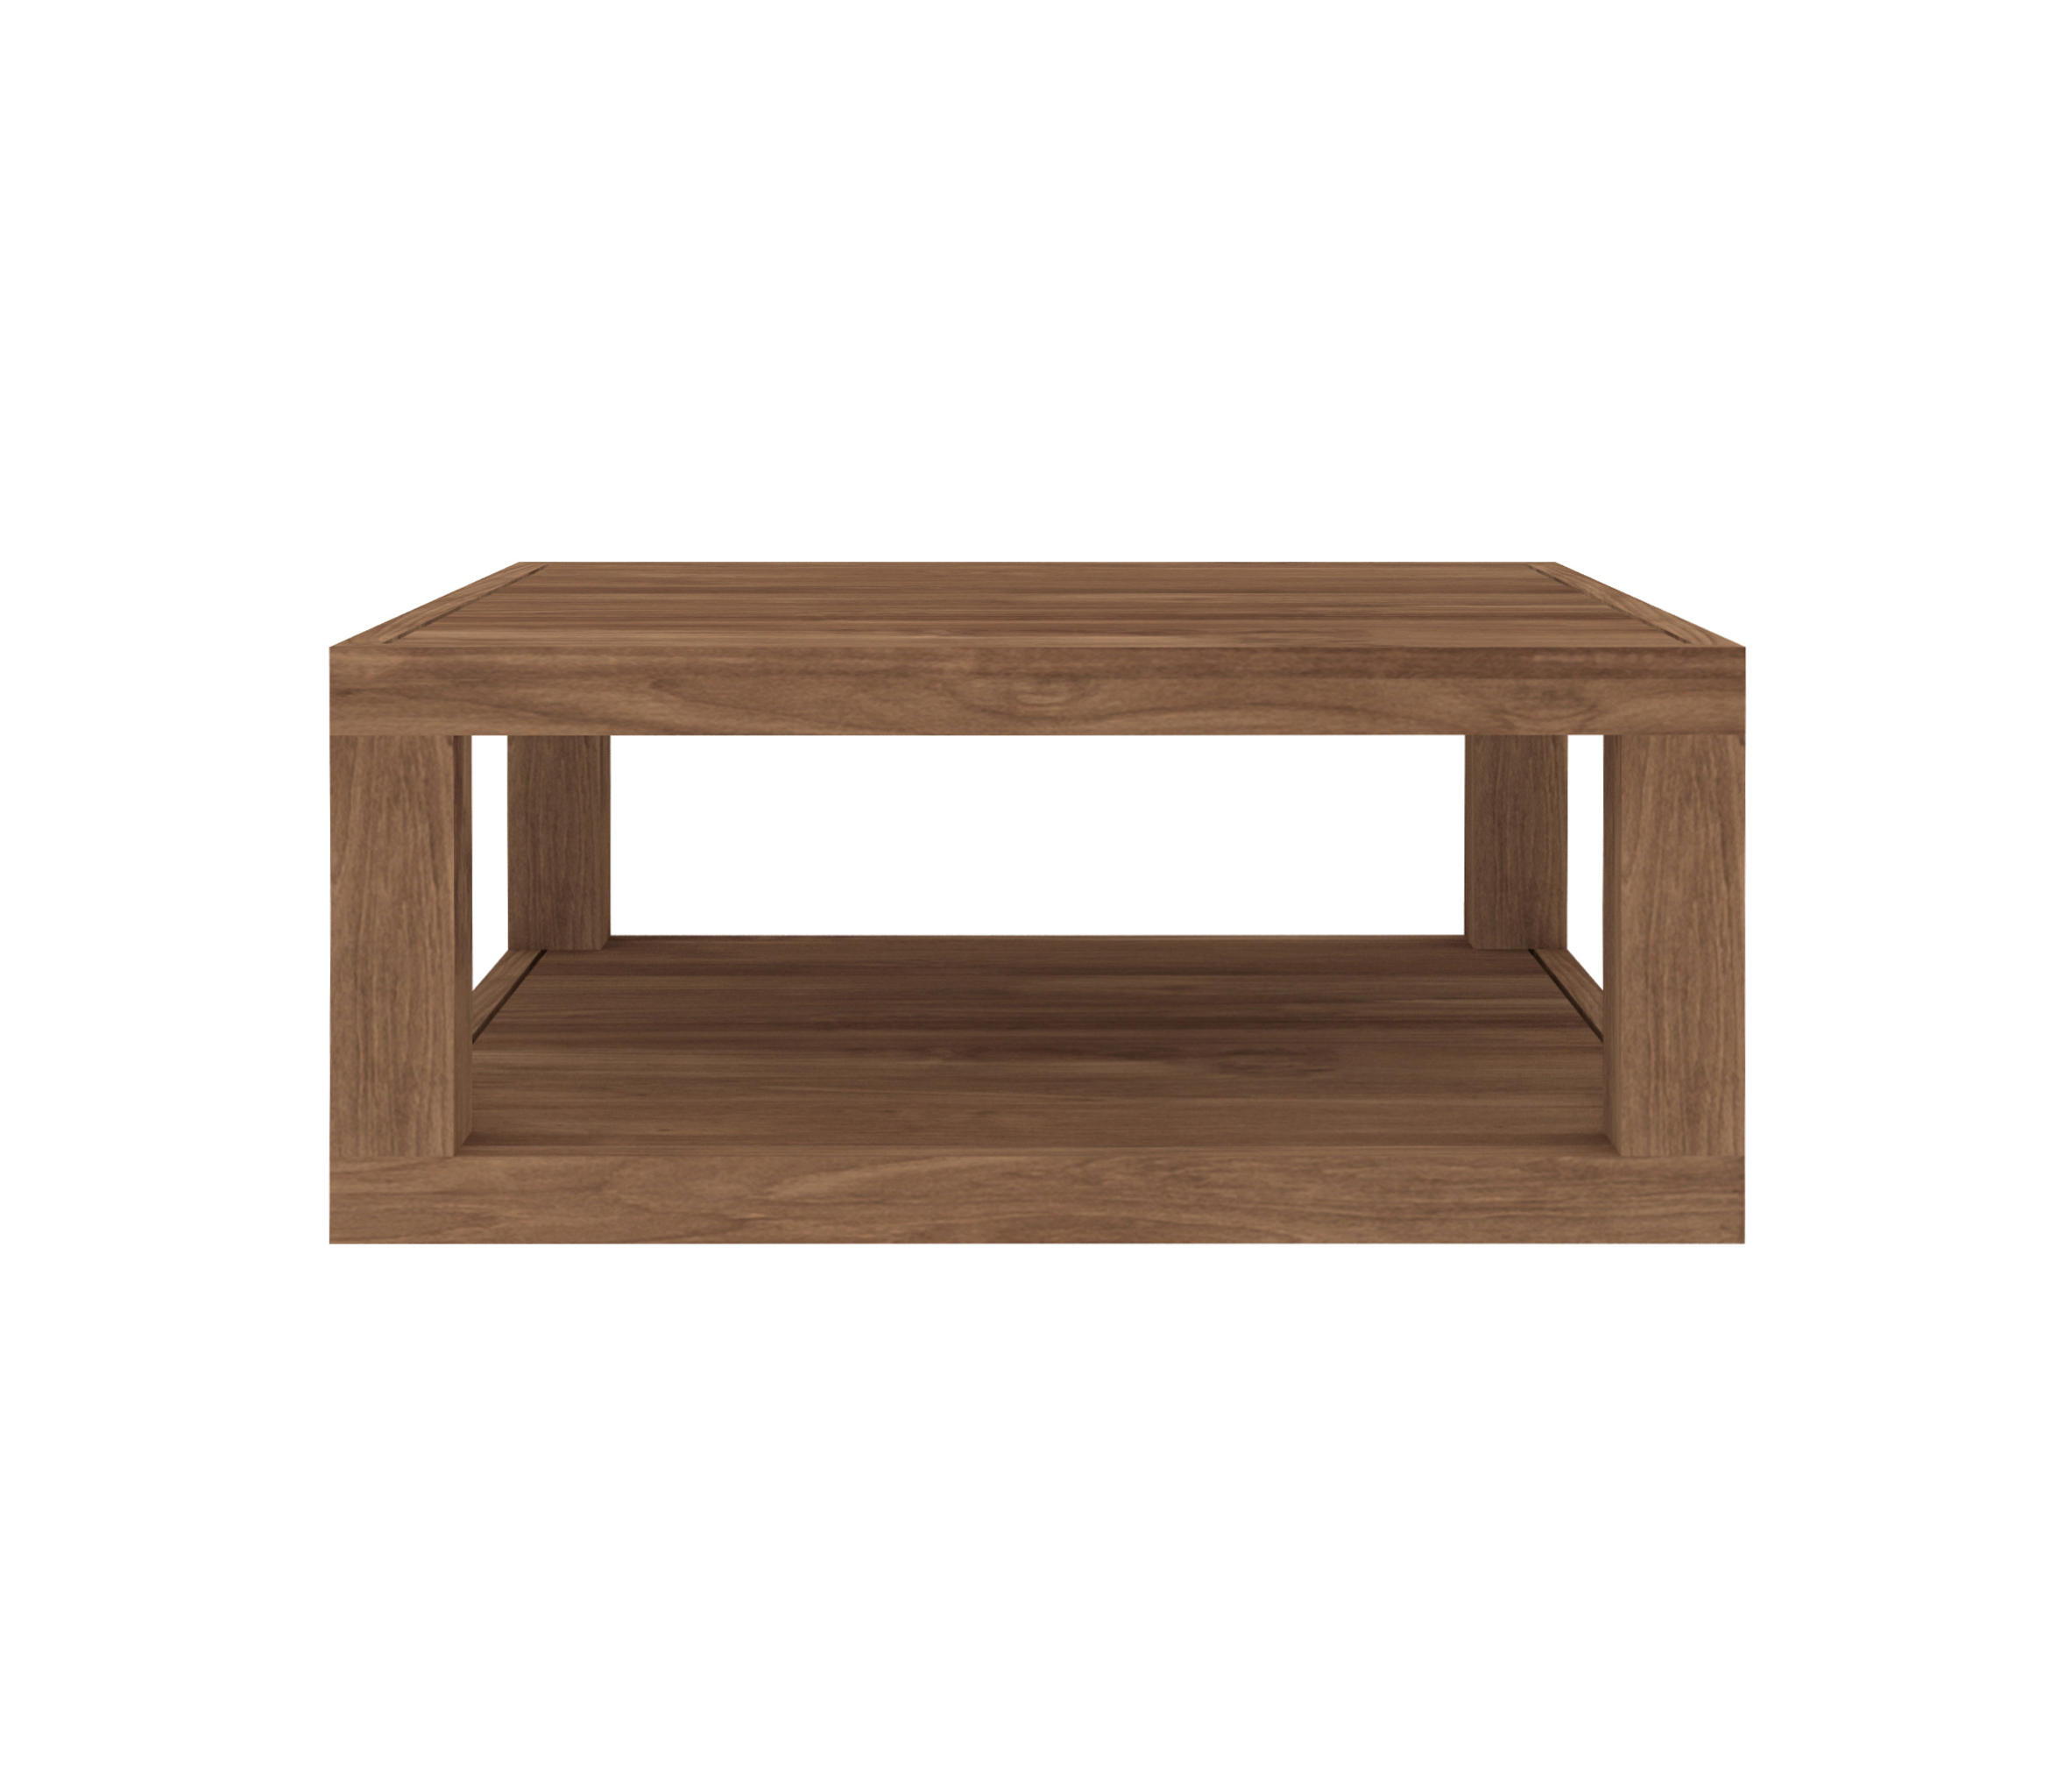 Teak Duplex Coffee Table Lounge Tables From Ethnicraft Architonic